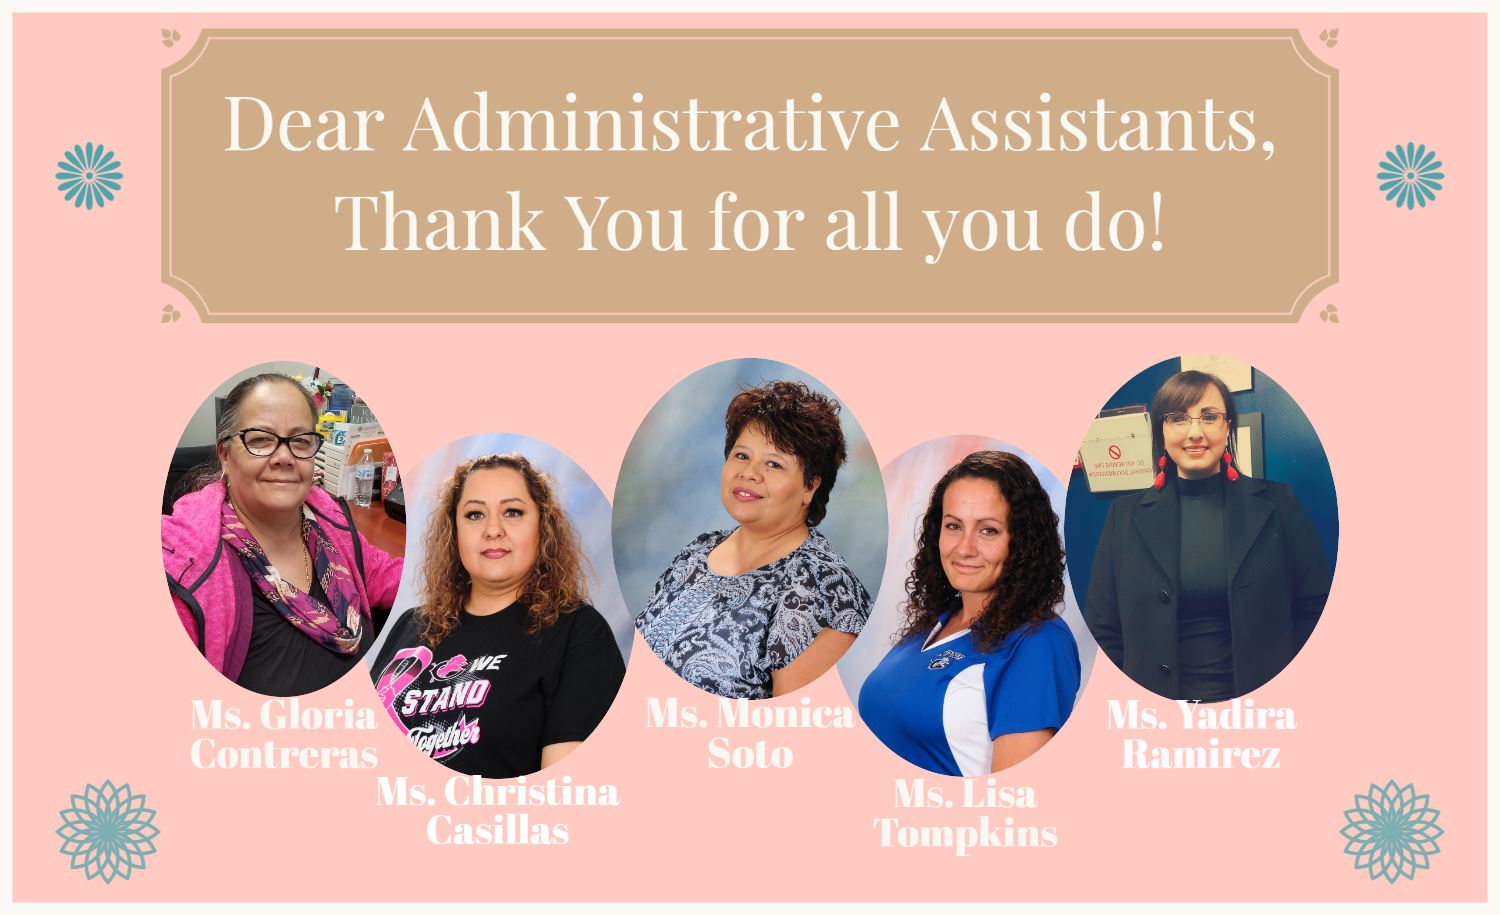 Thank You to our wonderful Administrative Assistants!